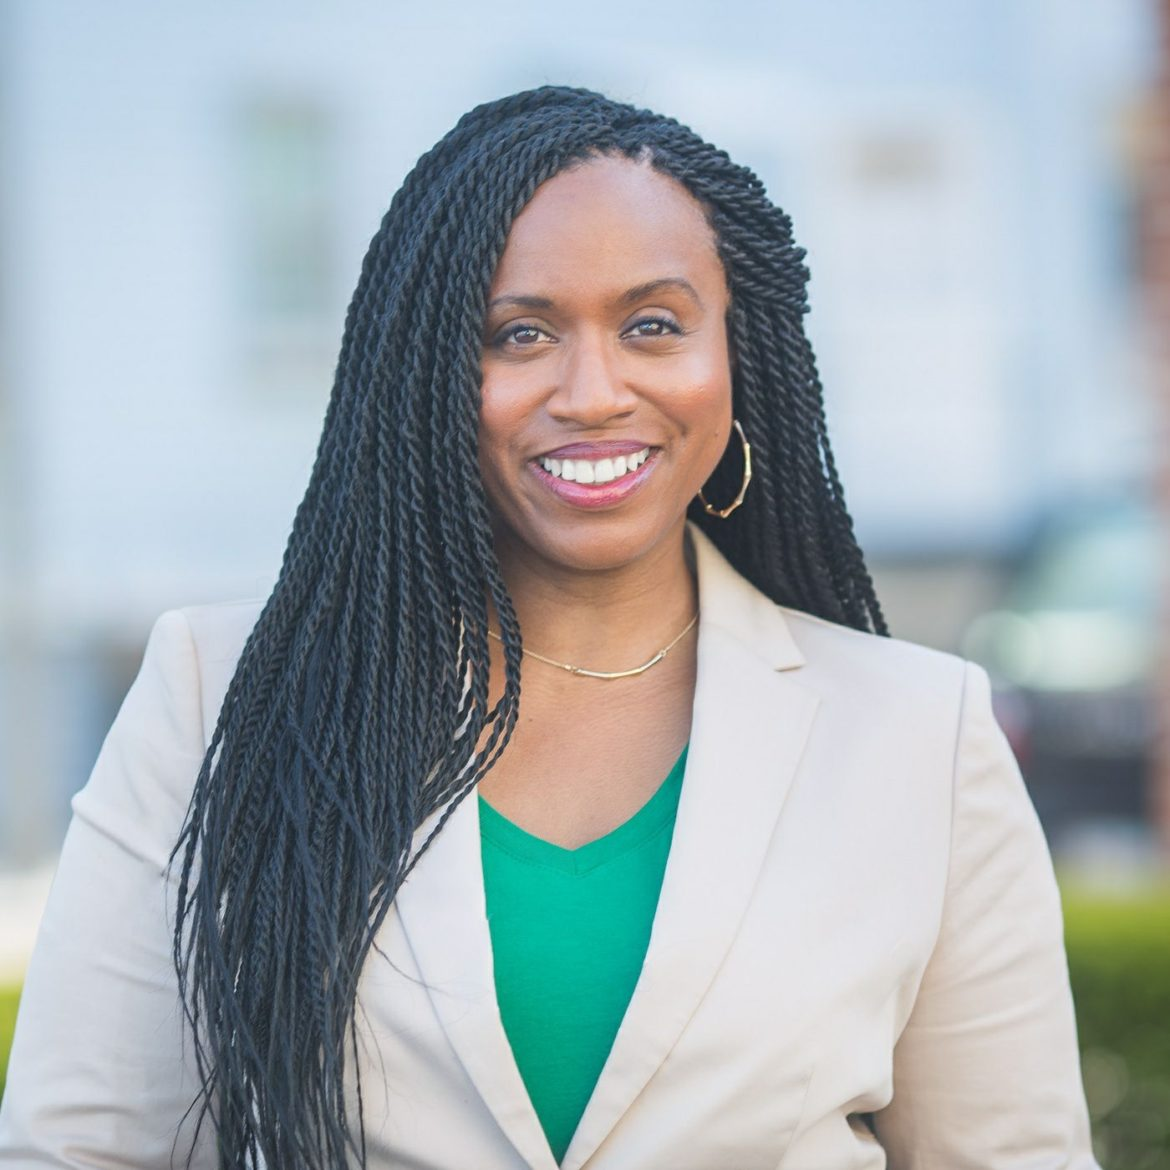 Ayanna Pressley, Massachusetts 7th District - Boston Office1700 Dorchester Avenue Boston, MA 02122Phone: (202) 225-5111Contact By Email